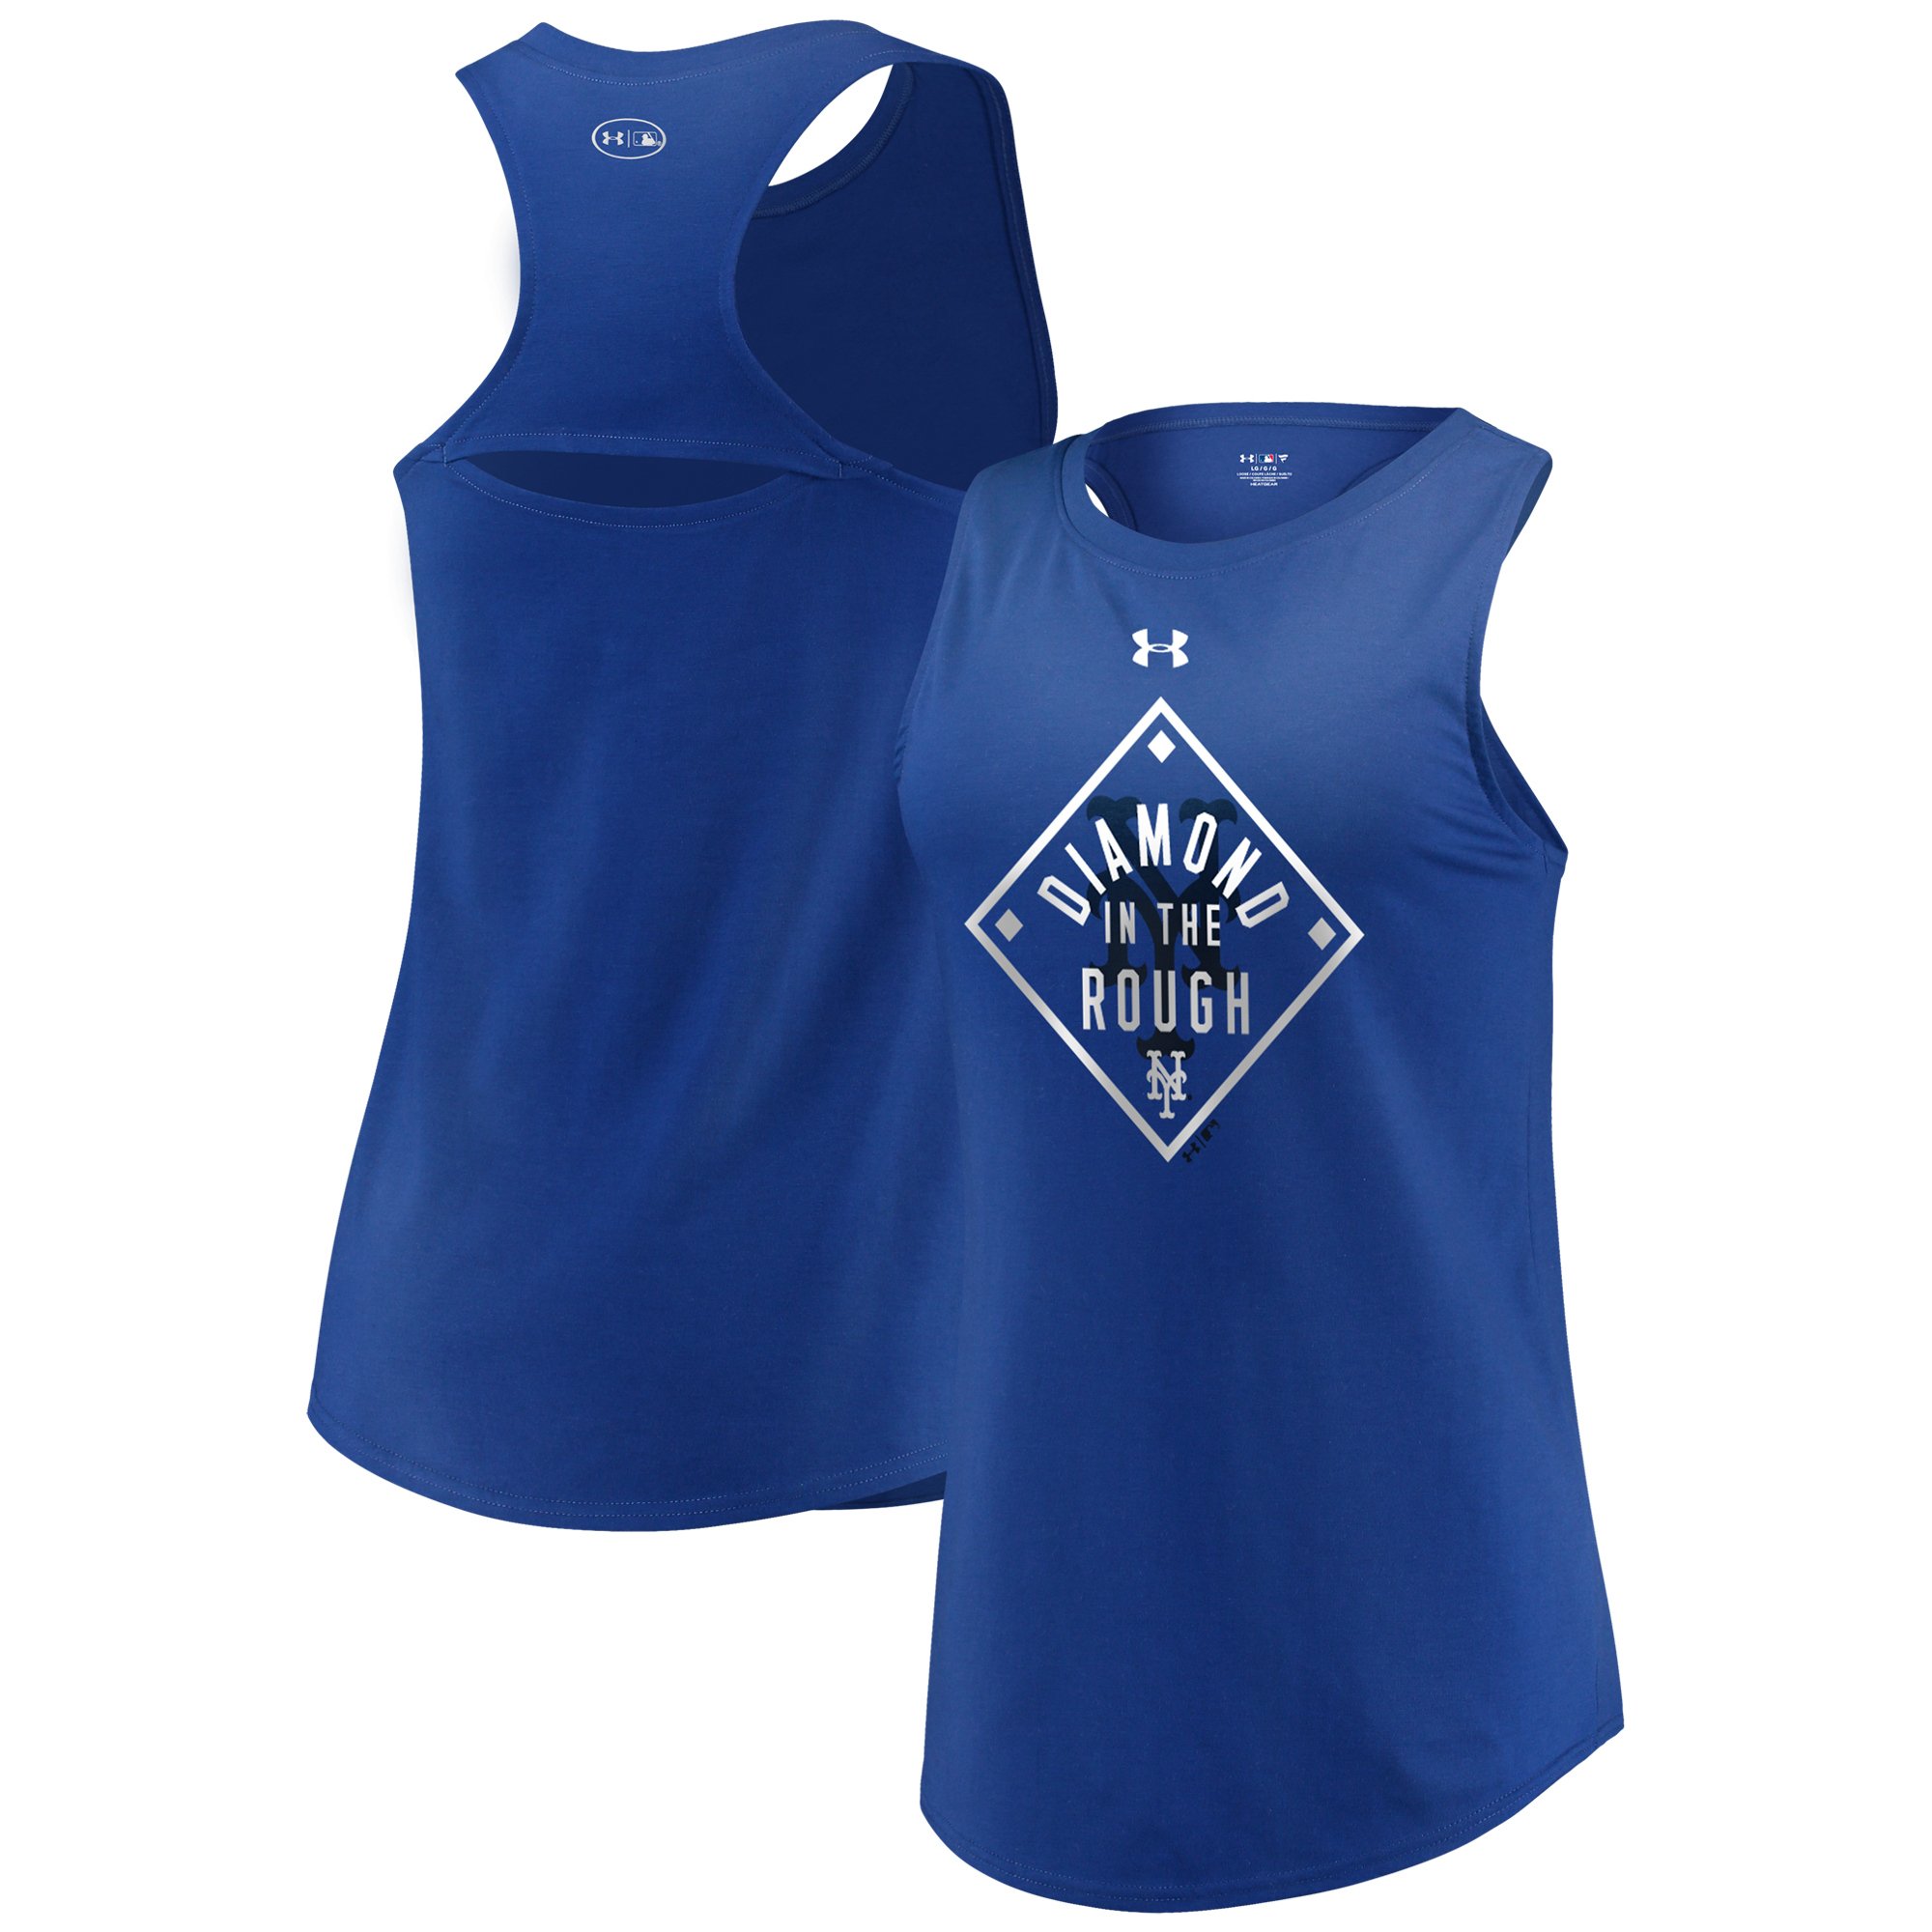 New York Mets Under Armour Women's Passion Diamond Tri-Blend Performance Tank Top Royal by MAJESTIC LSG